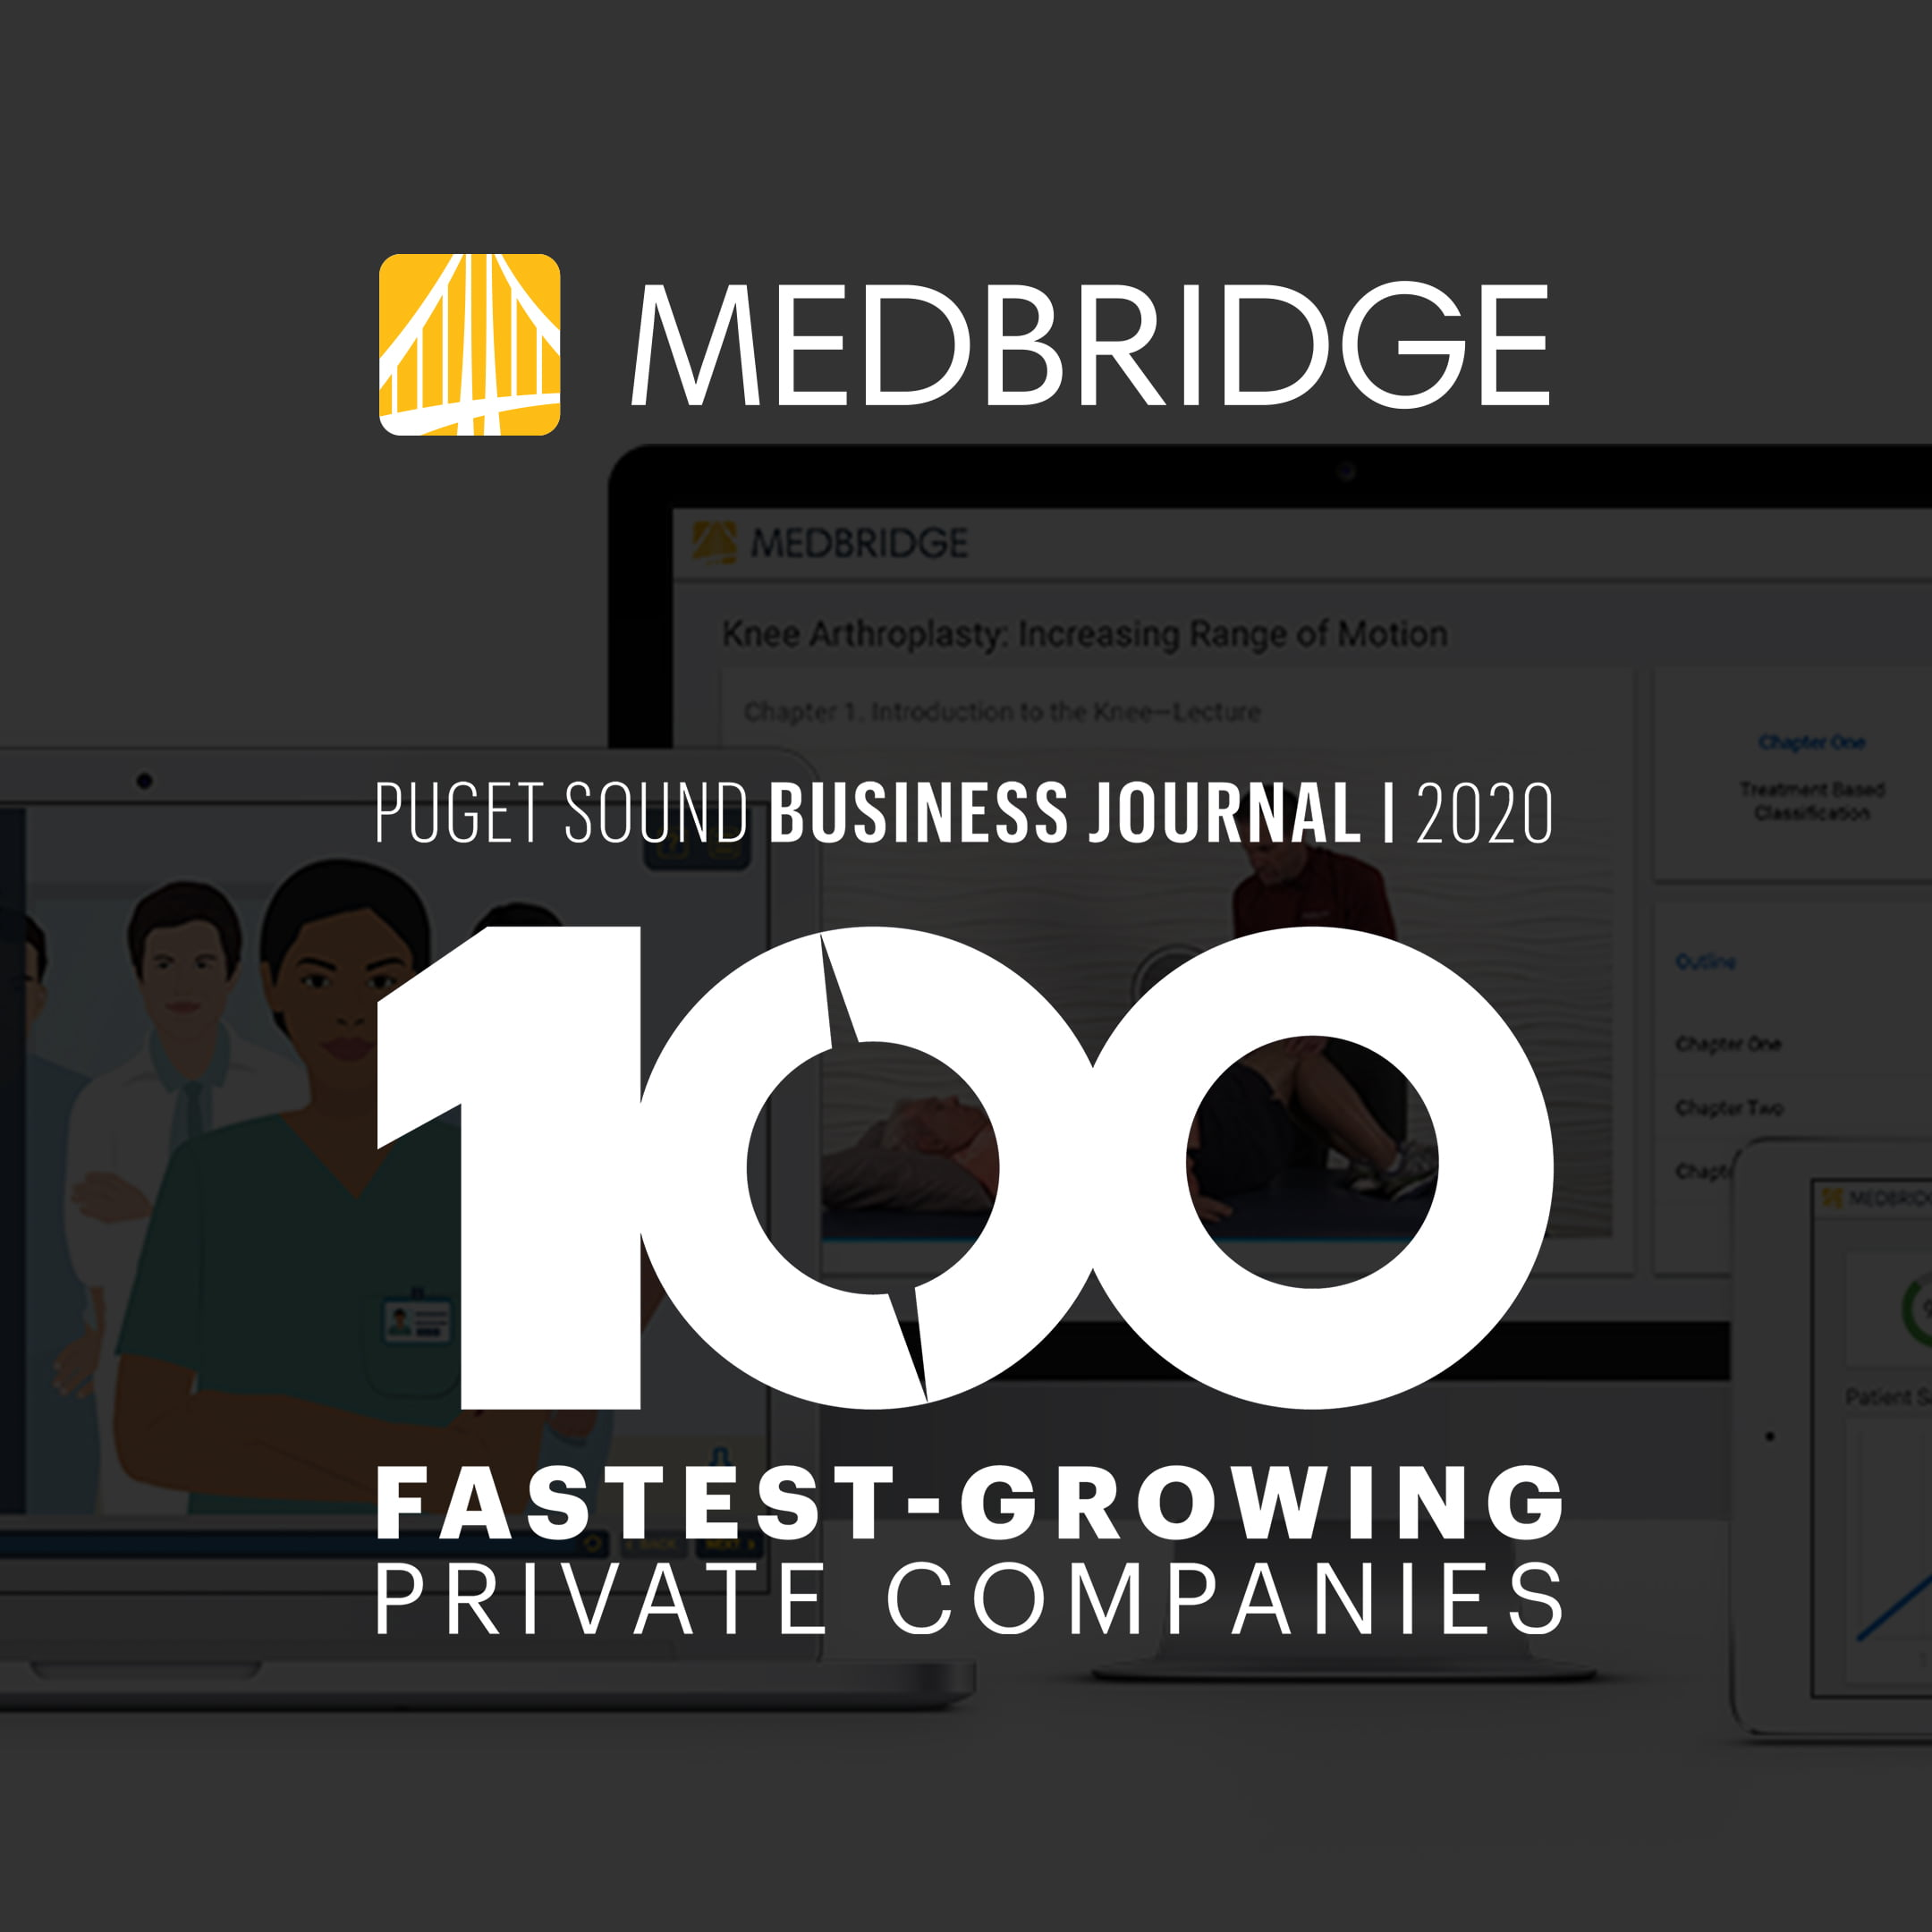 MedBridge Named 17th Fastest Growing Private Company By Puget Sound Business Journal